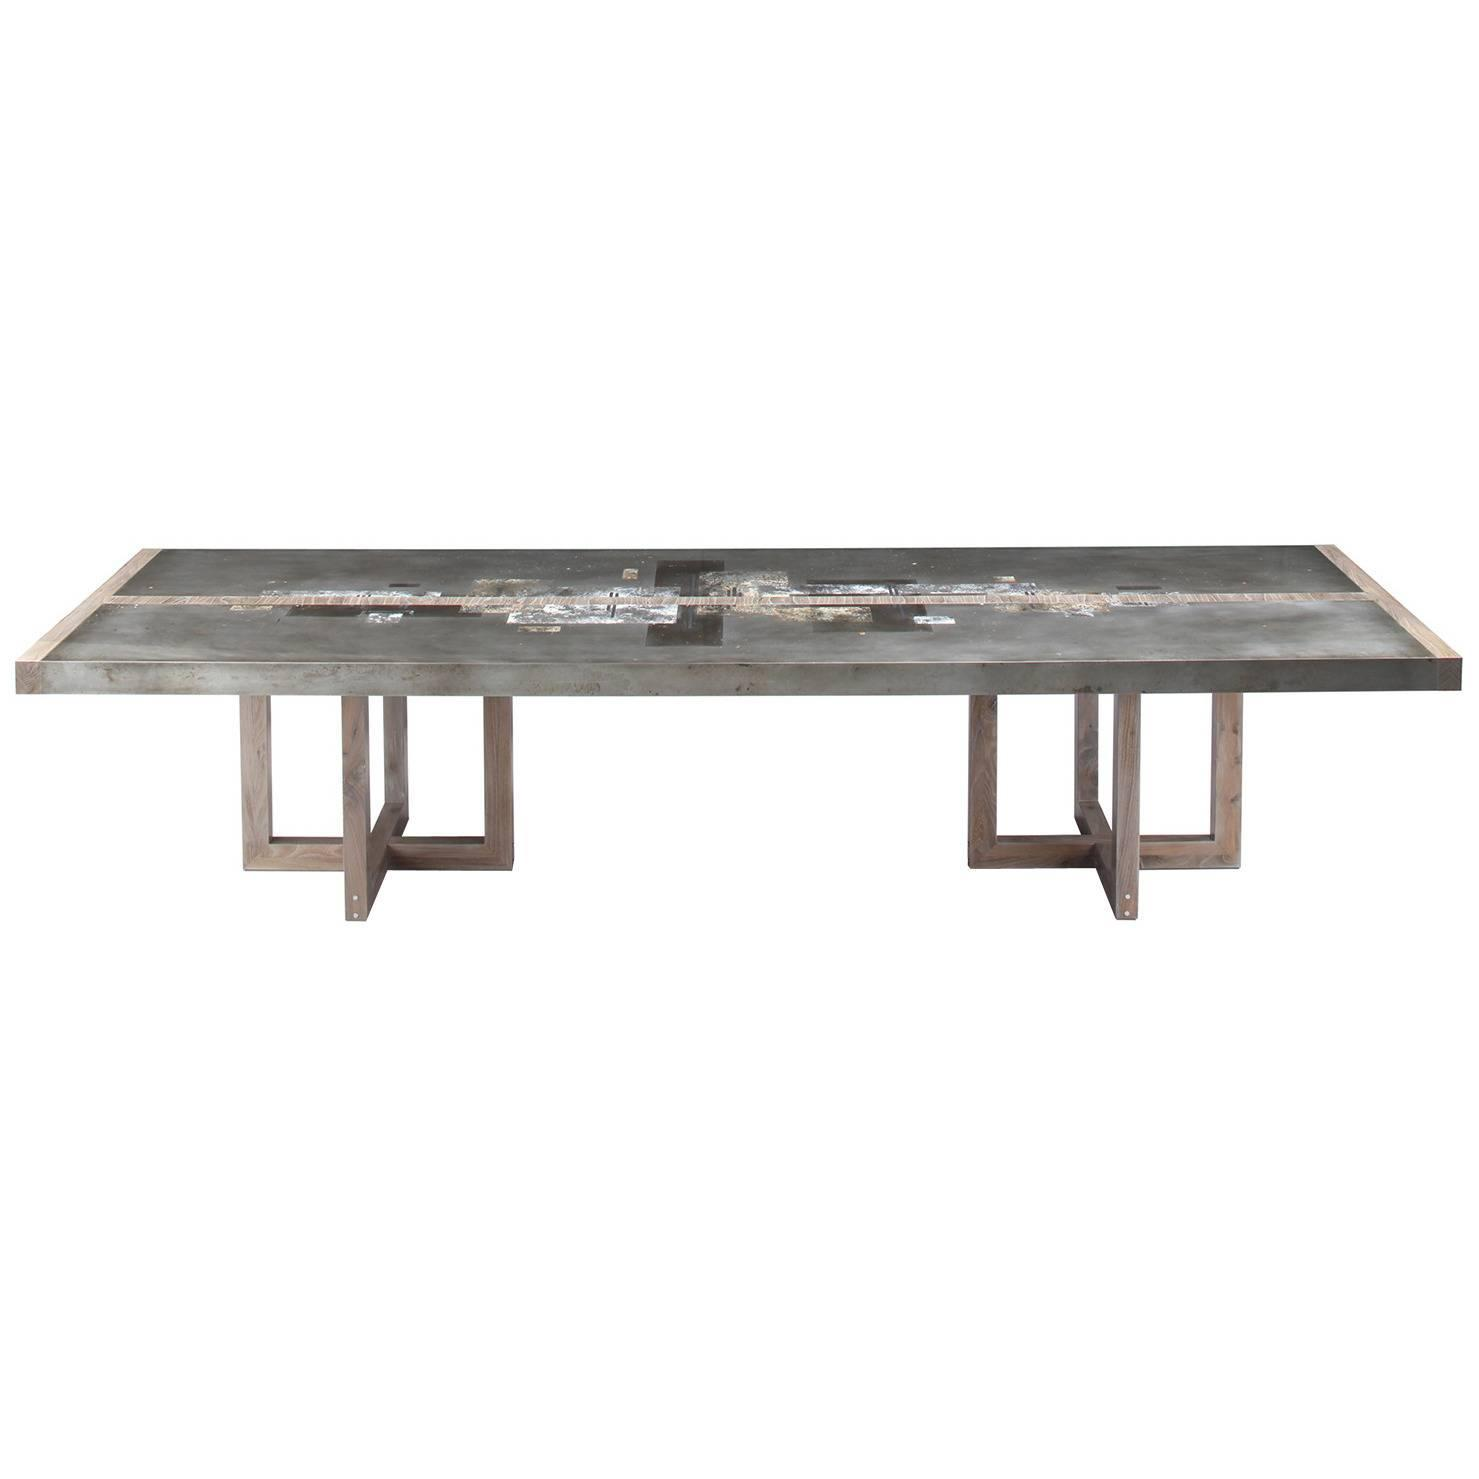 quot divided lands quot dining table in etched zinc and elm smoke rare sculptural byron botker for landes chrome dining set